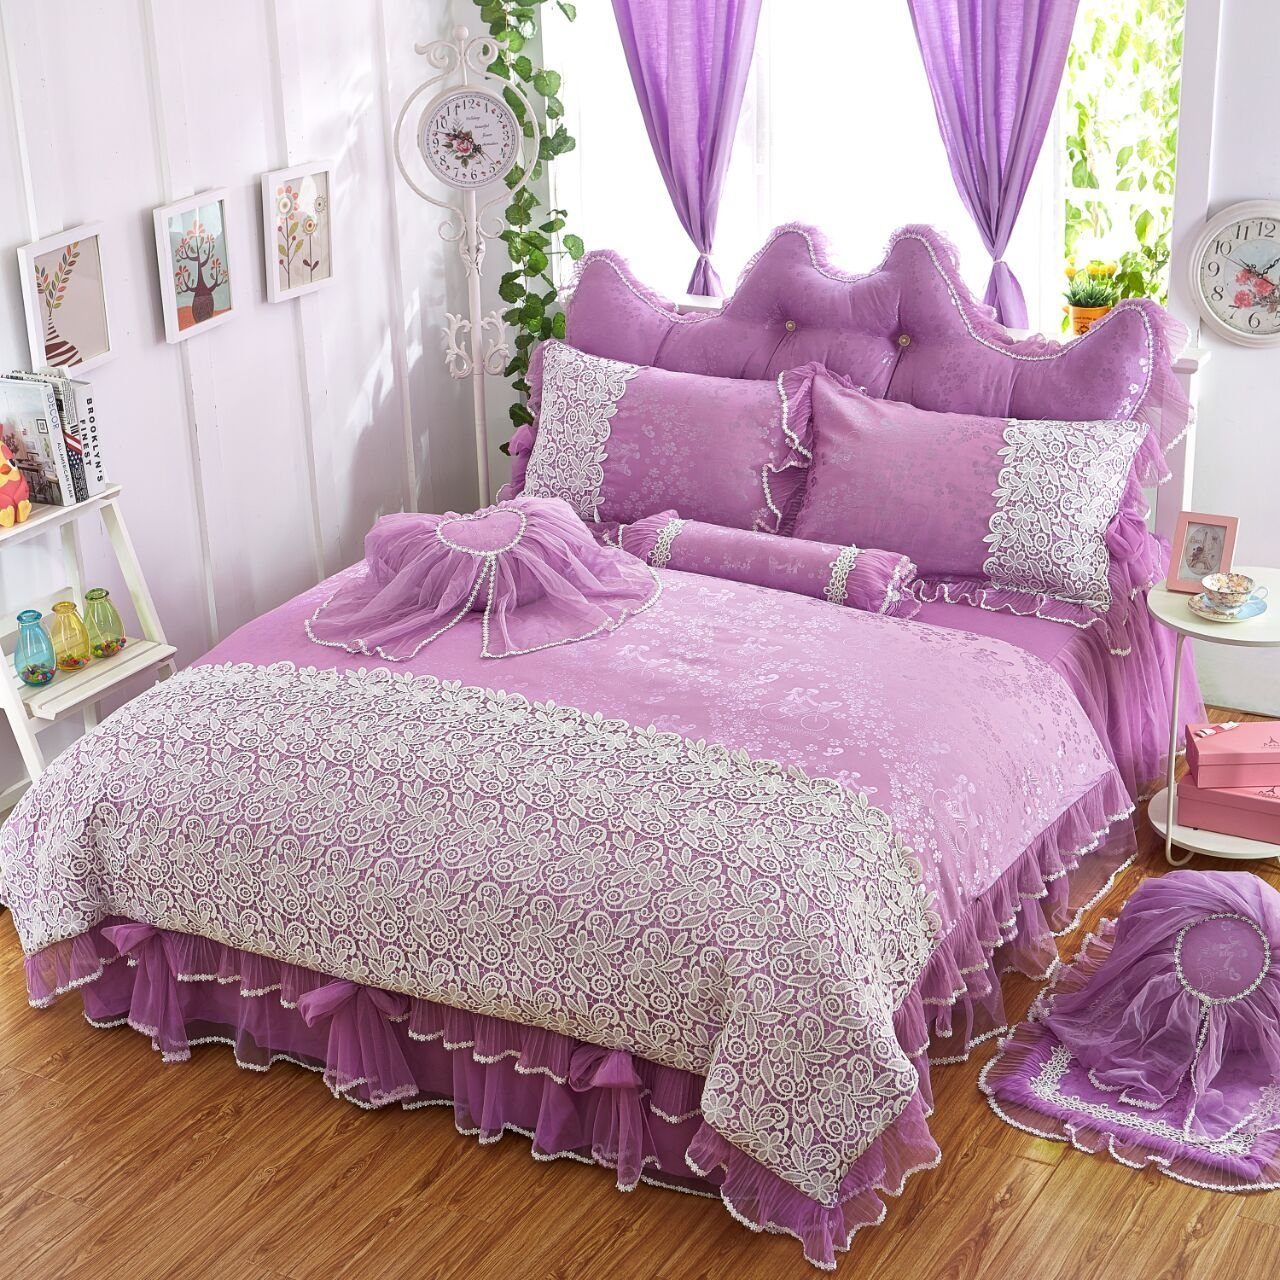 Girls Bedding Sets White Lace Ruffle Duvet Cover Set Princess Bed ...